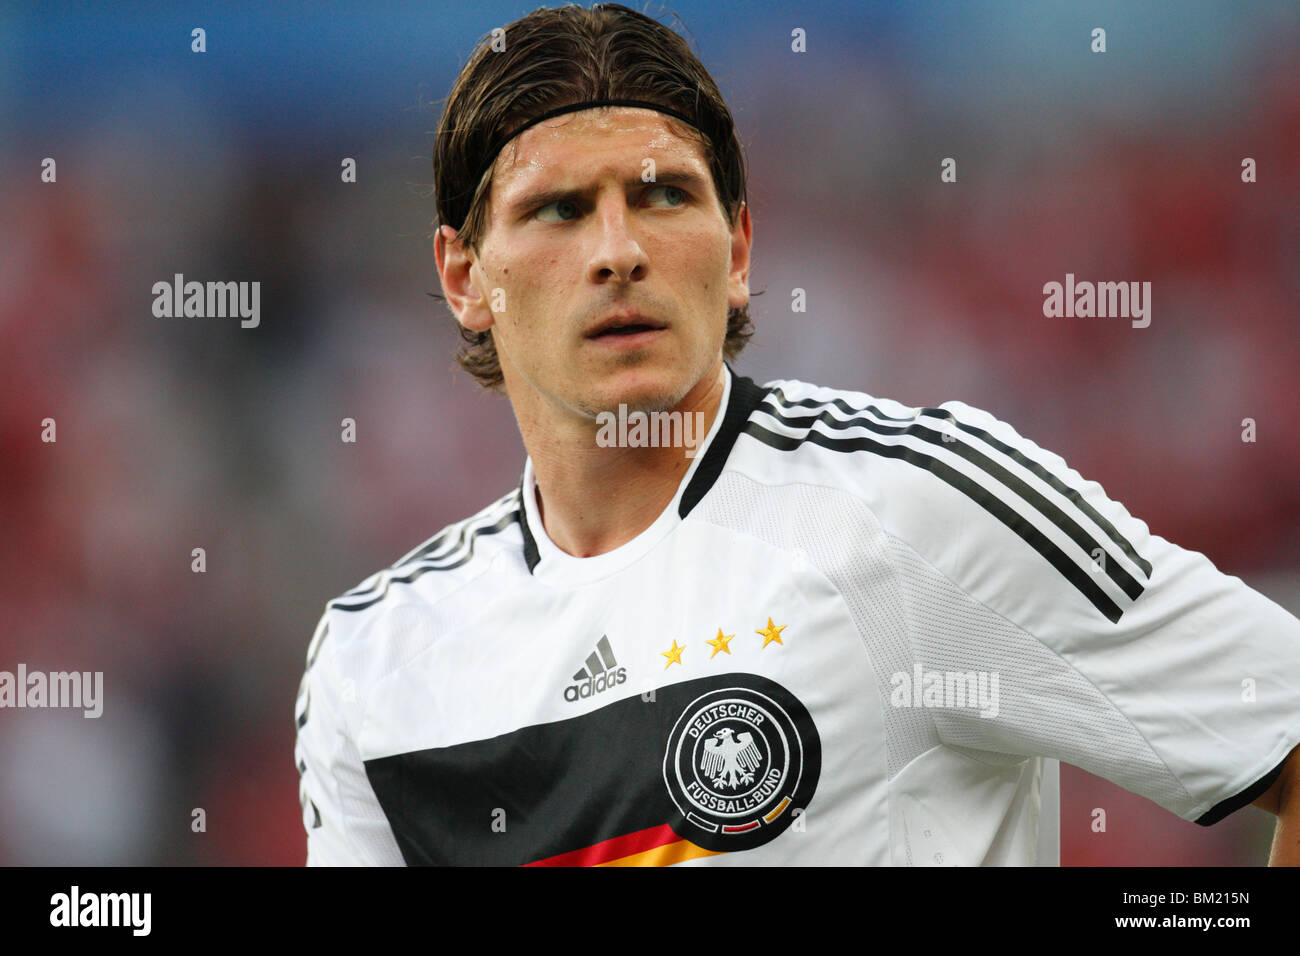 Mario Gomez of Germany seen during team warm ups prior to a UEFA Euro 2008 Group B soccer match against Austria. - Stock Image